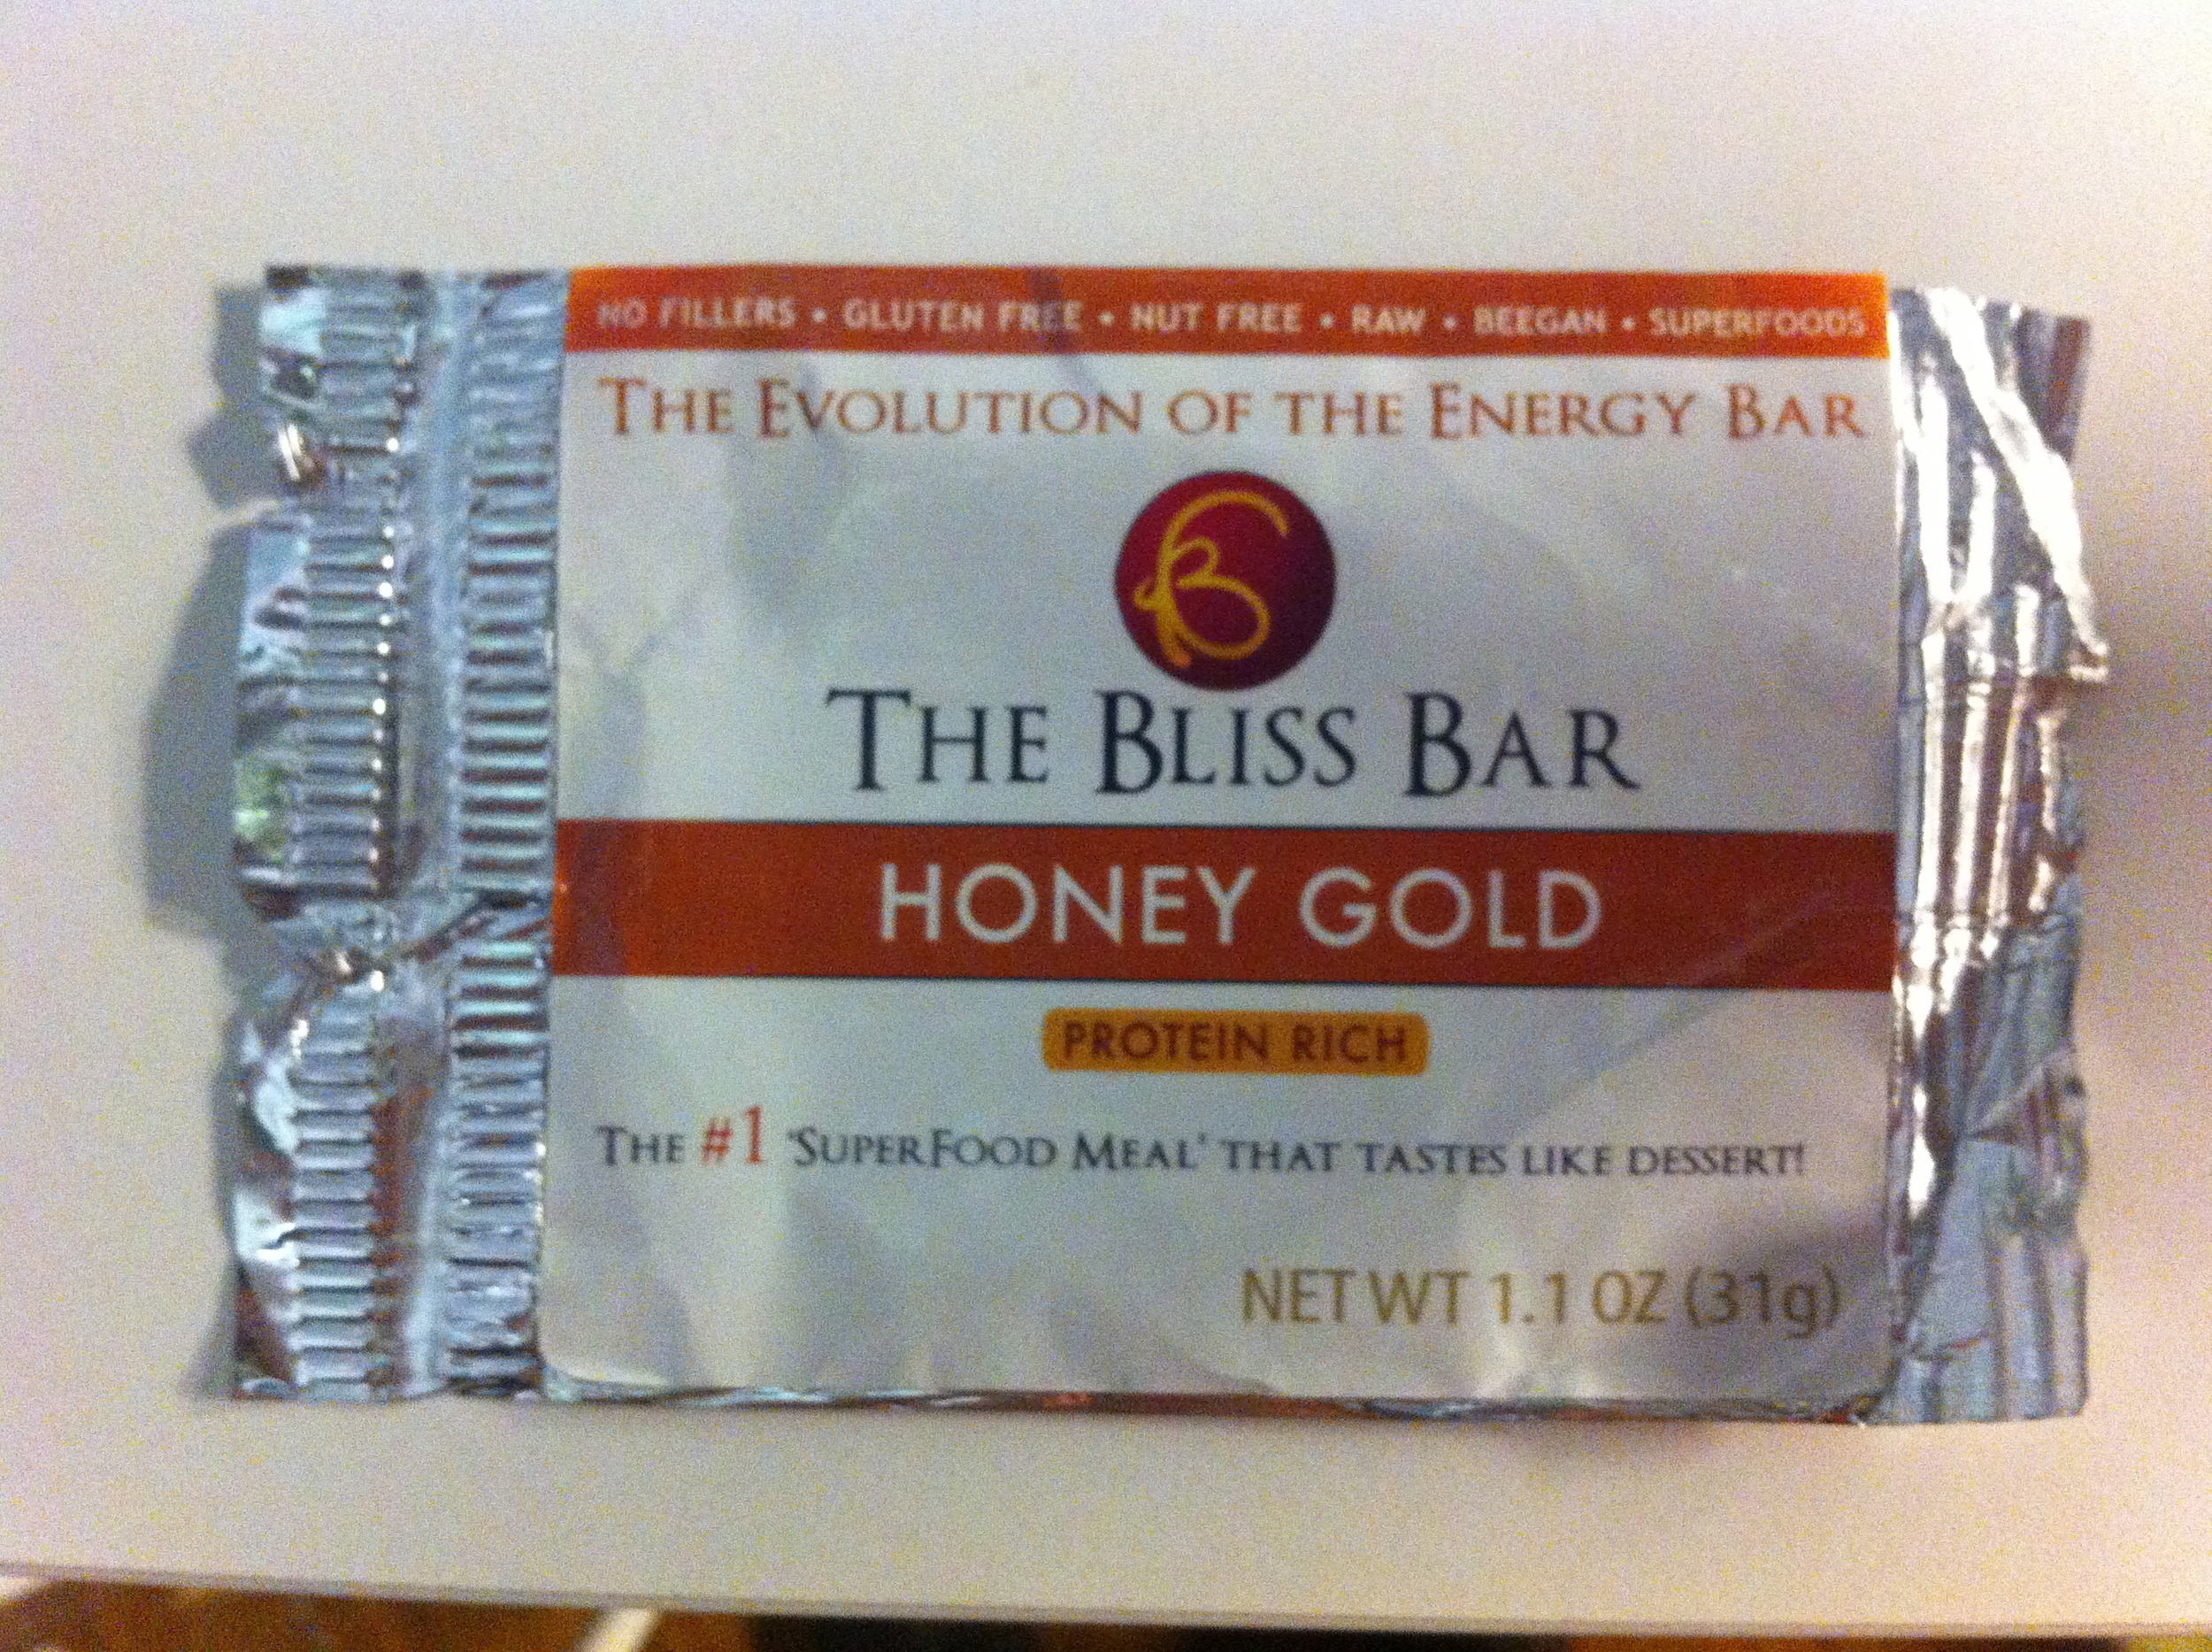 The Bliss Bar